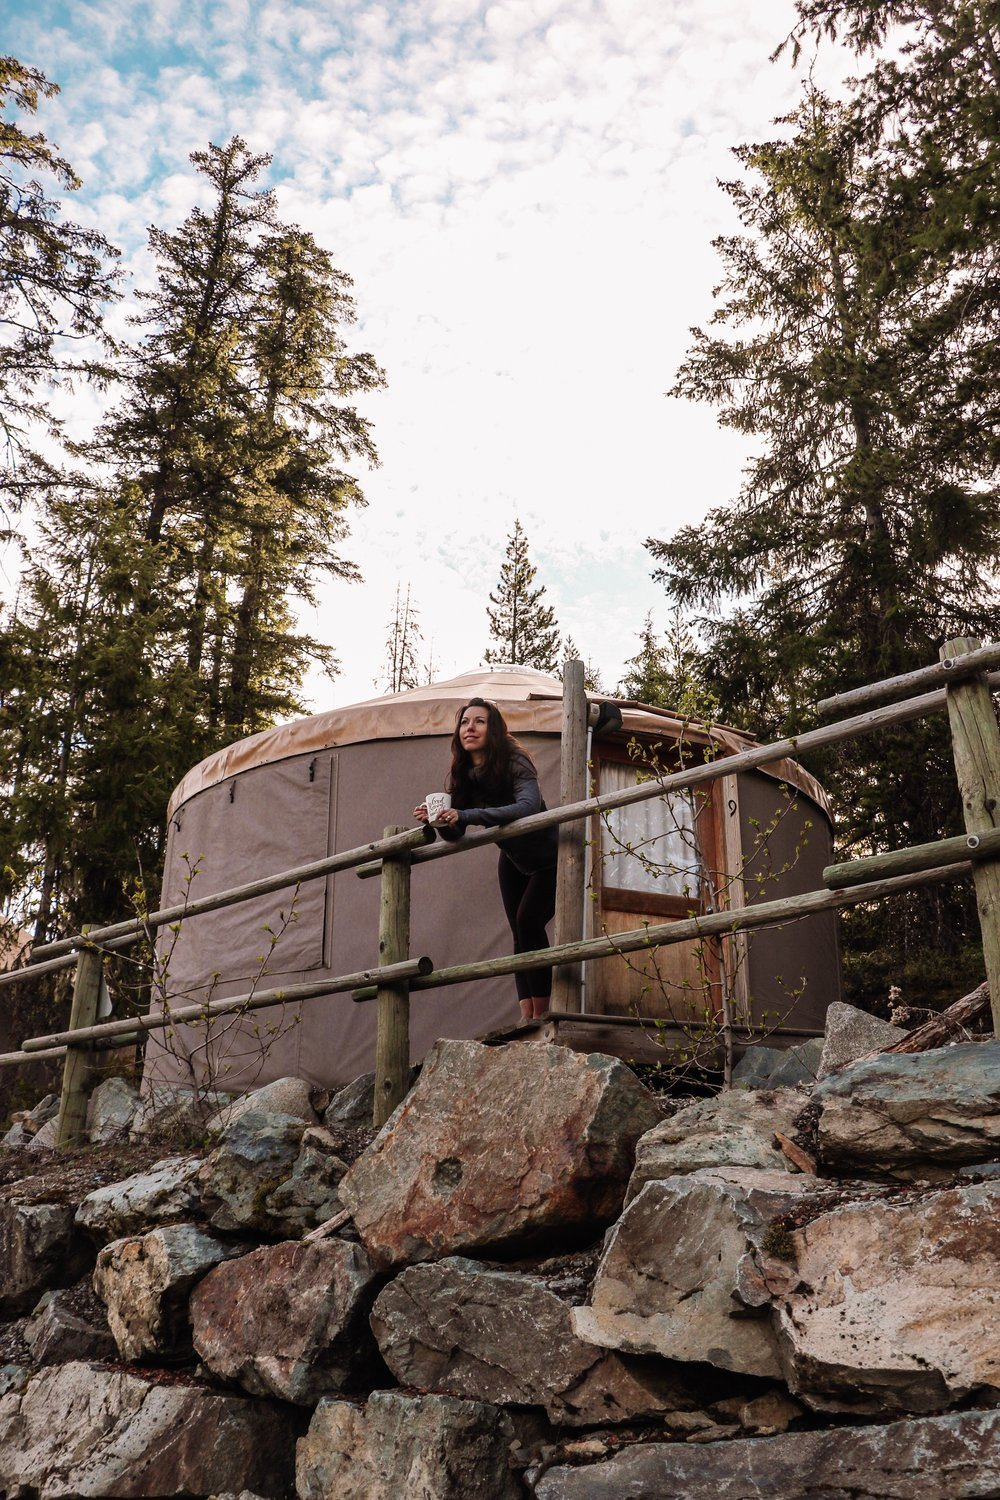 Special weekend getaway ideas in Whistler BC Canada